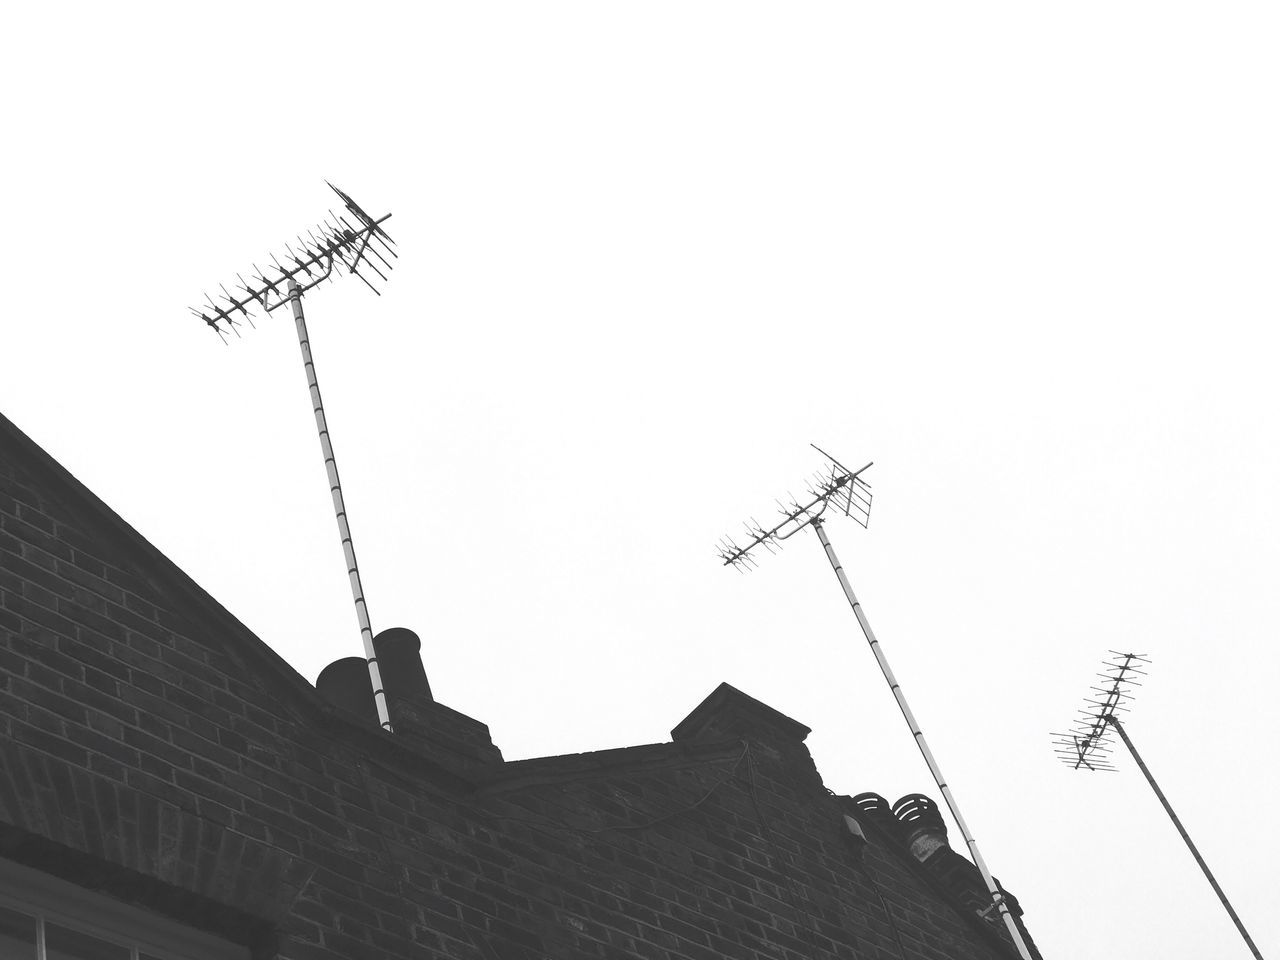 Television Aerial Antenna - Aerial Clear Sky Architecture Communication Antenna Day Outdoors Sky Rooftops Telecommunications Equipment Television Broadcast Residential  Entertainment Channels Copy Space